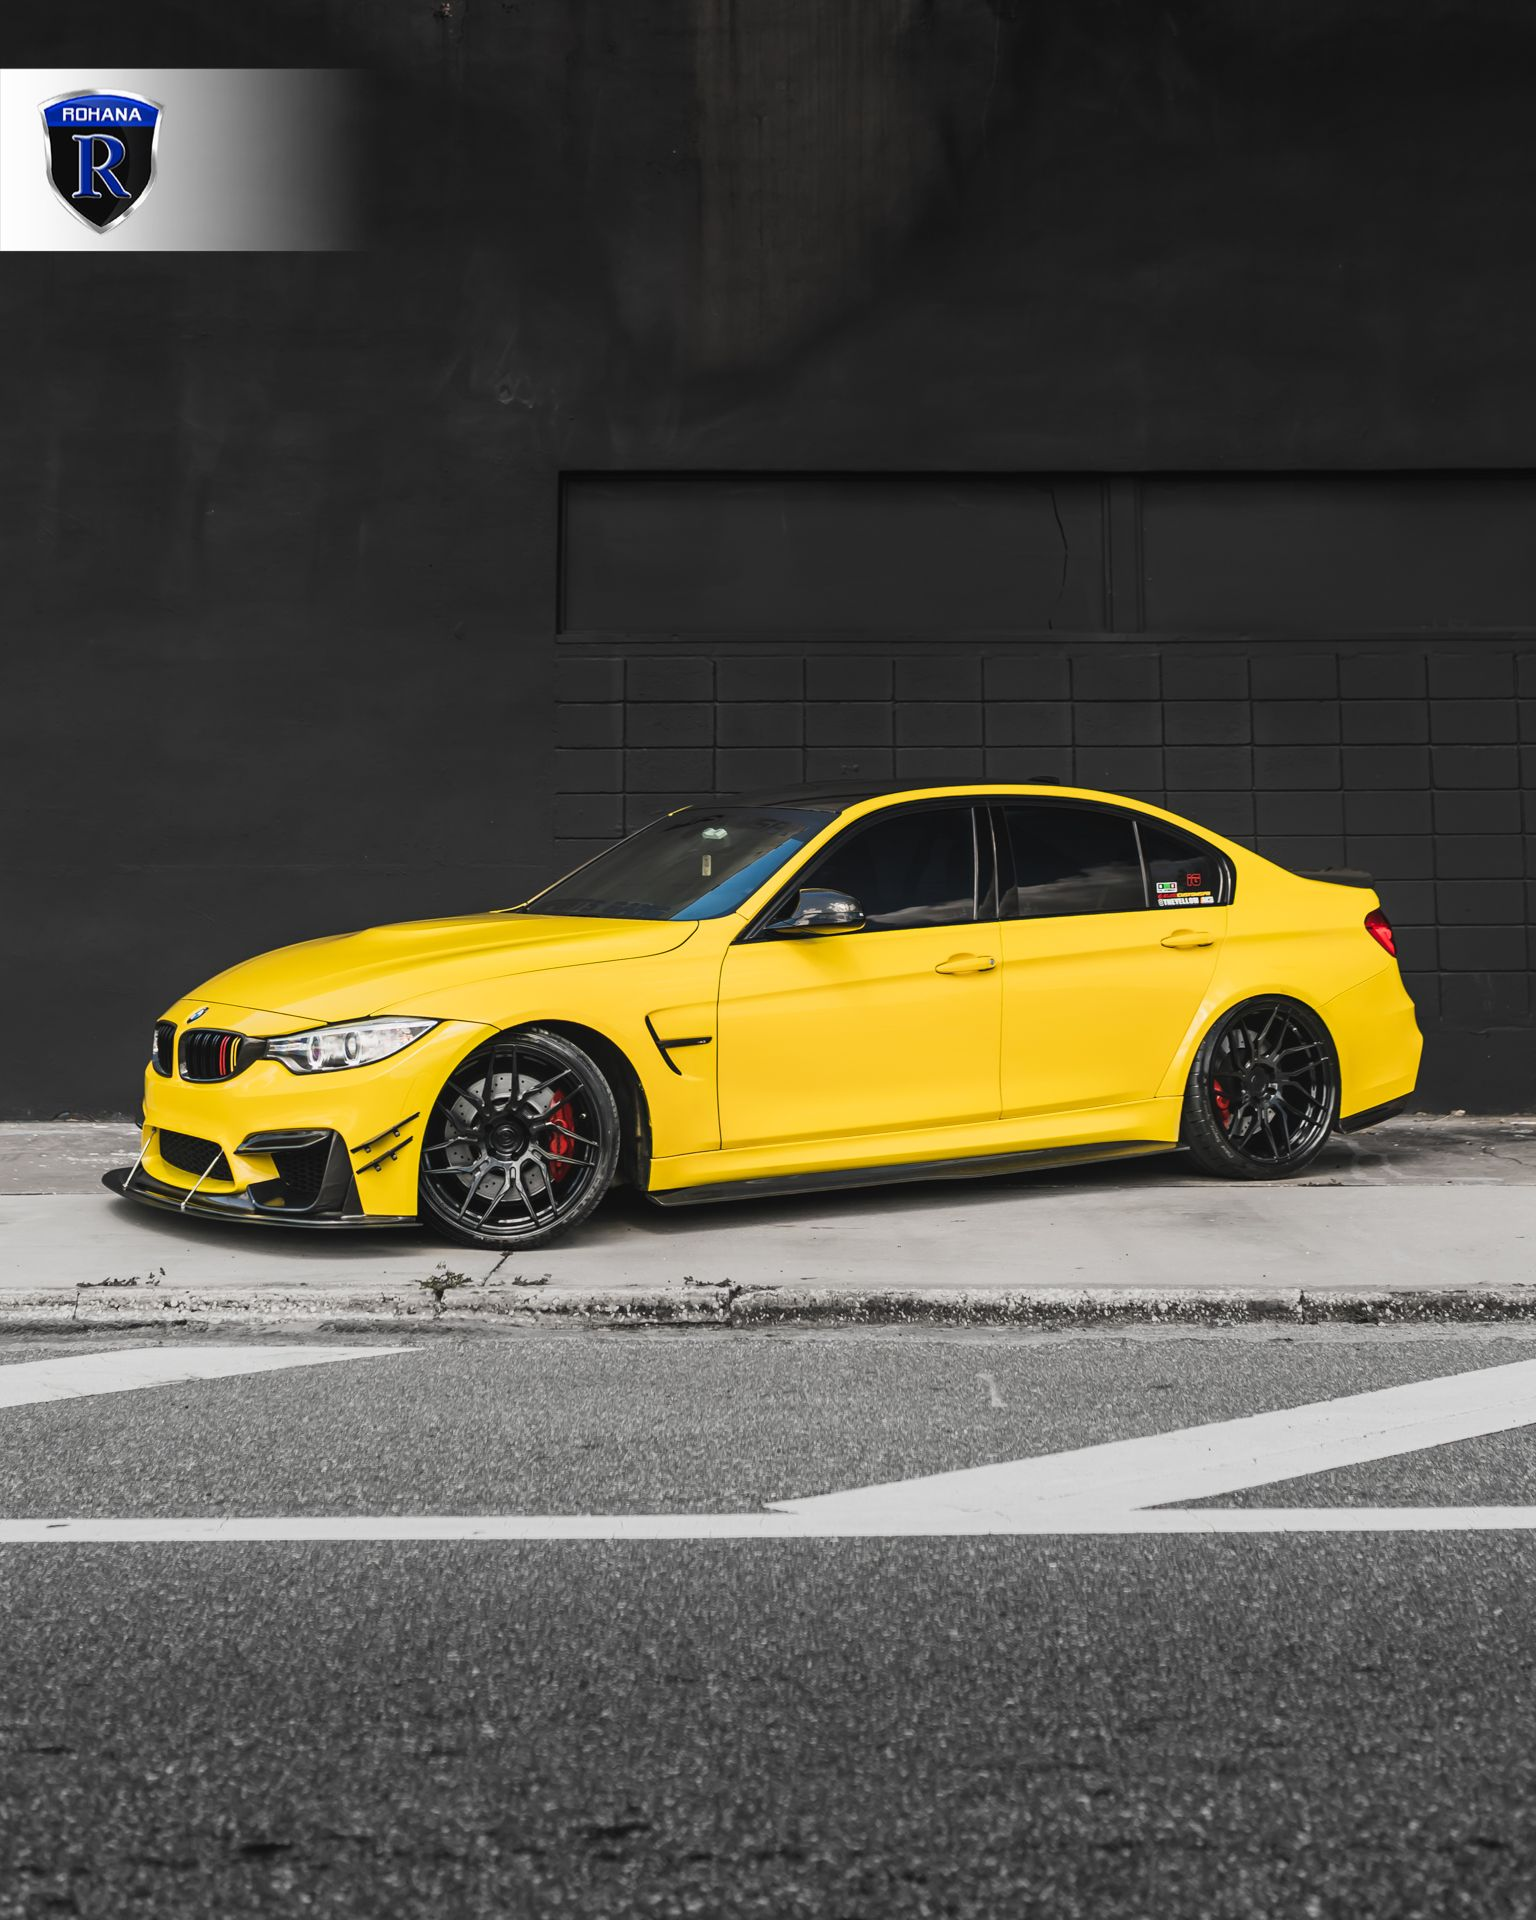 Pin By Isaac Duckert On BMW (With Images)